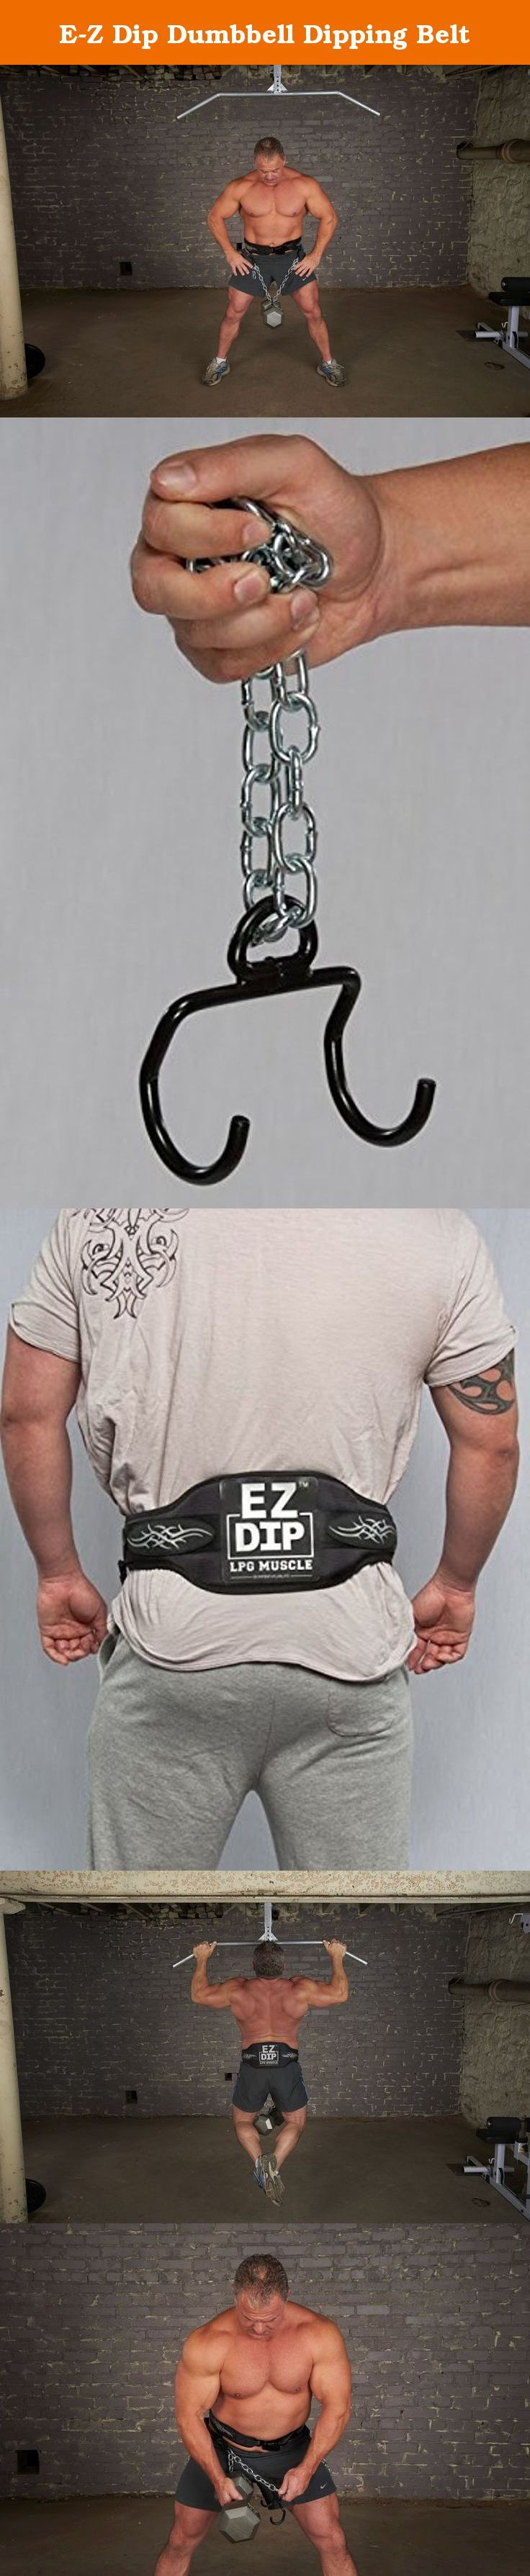 E-Z Dip Dumbbell Dipping Belt. EZ-DIP the worlds only Dumbbell Dipping Belt, locks and loads in seconds with airplane seat buckle speed & security. Plush comfort is assured with integrated hip cushions and a slim, athletic fit. Dumbbell weight changes are instant and dual snap hooks make chain length adjustments a cinch for left or right handers. Lifetime guaranteed EZ-DIP uses seat belt grade webbing, and easily pull tests to 500 pounds plus. EZ-DIP can load with chain alone or with...